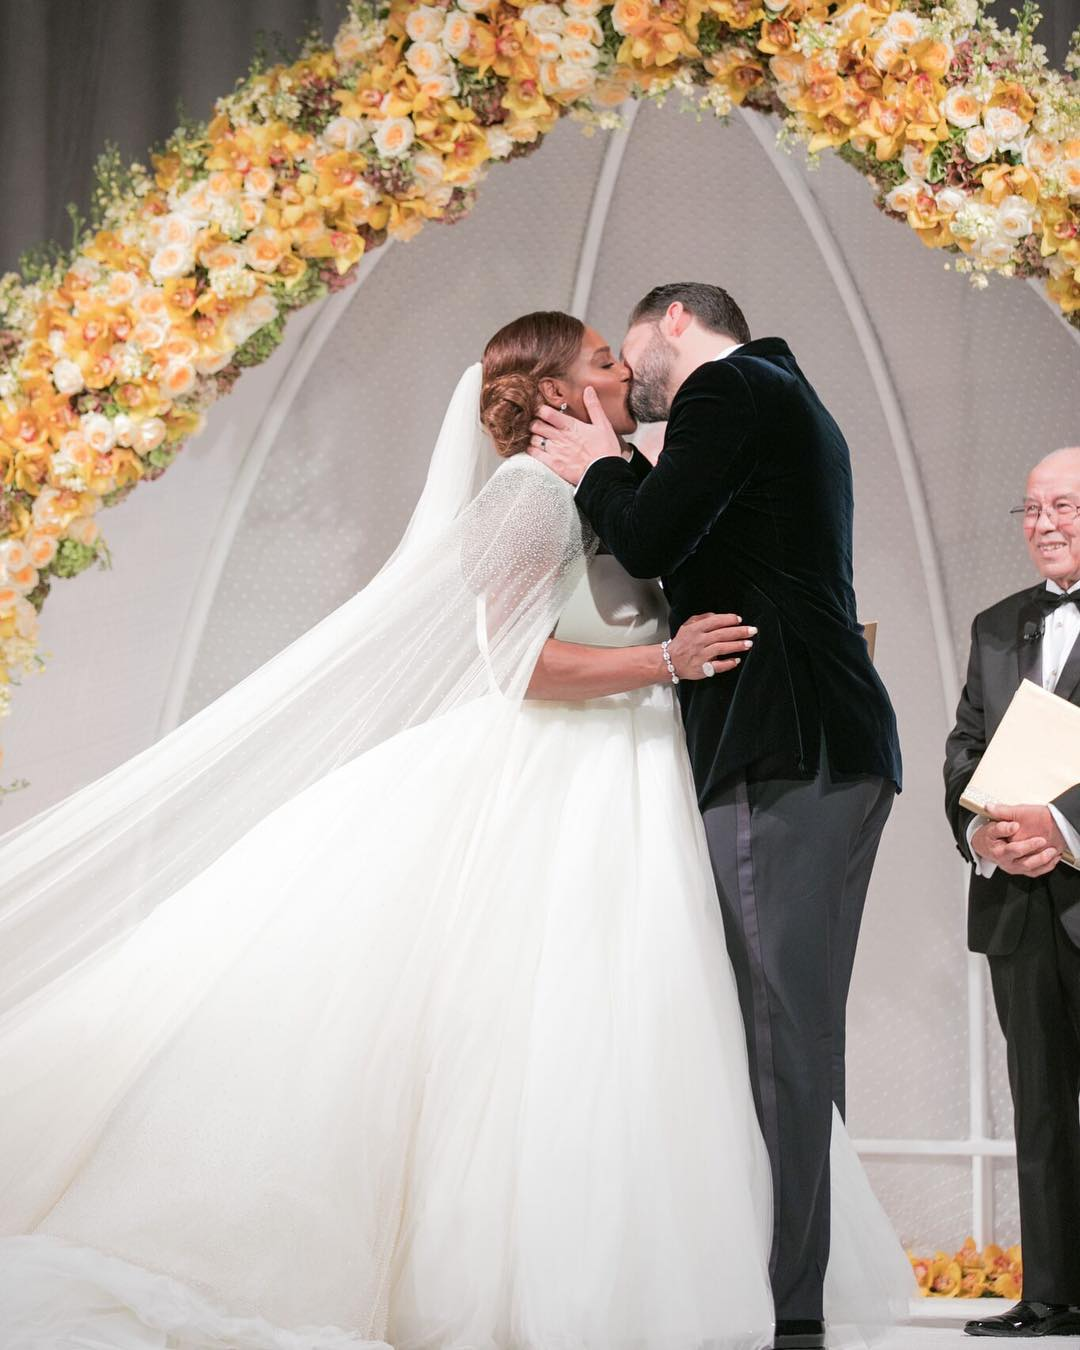 Serena Williams and Alexis Ohanian get married in New ...